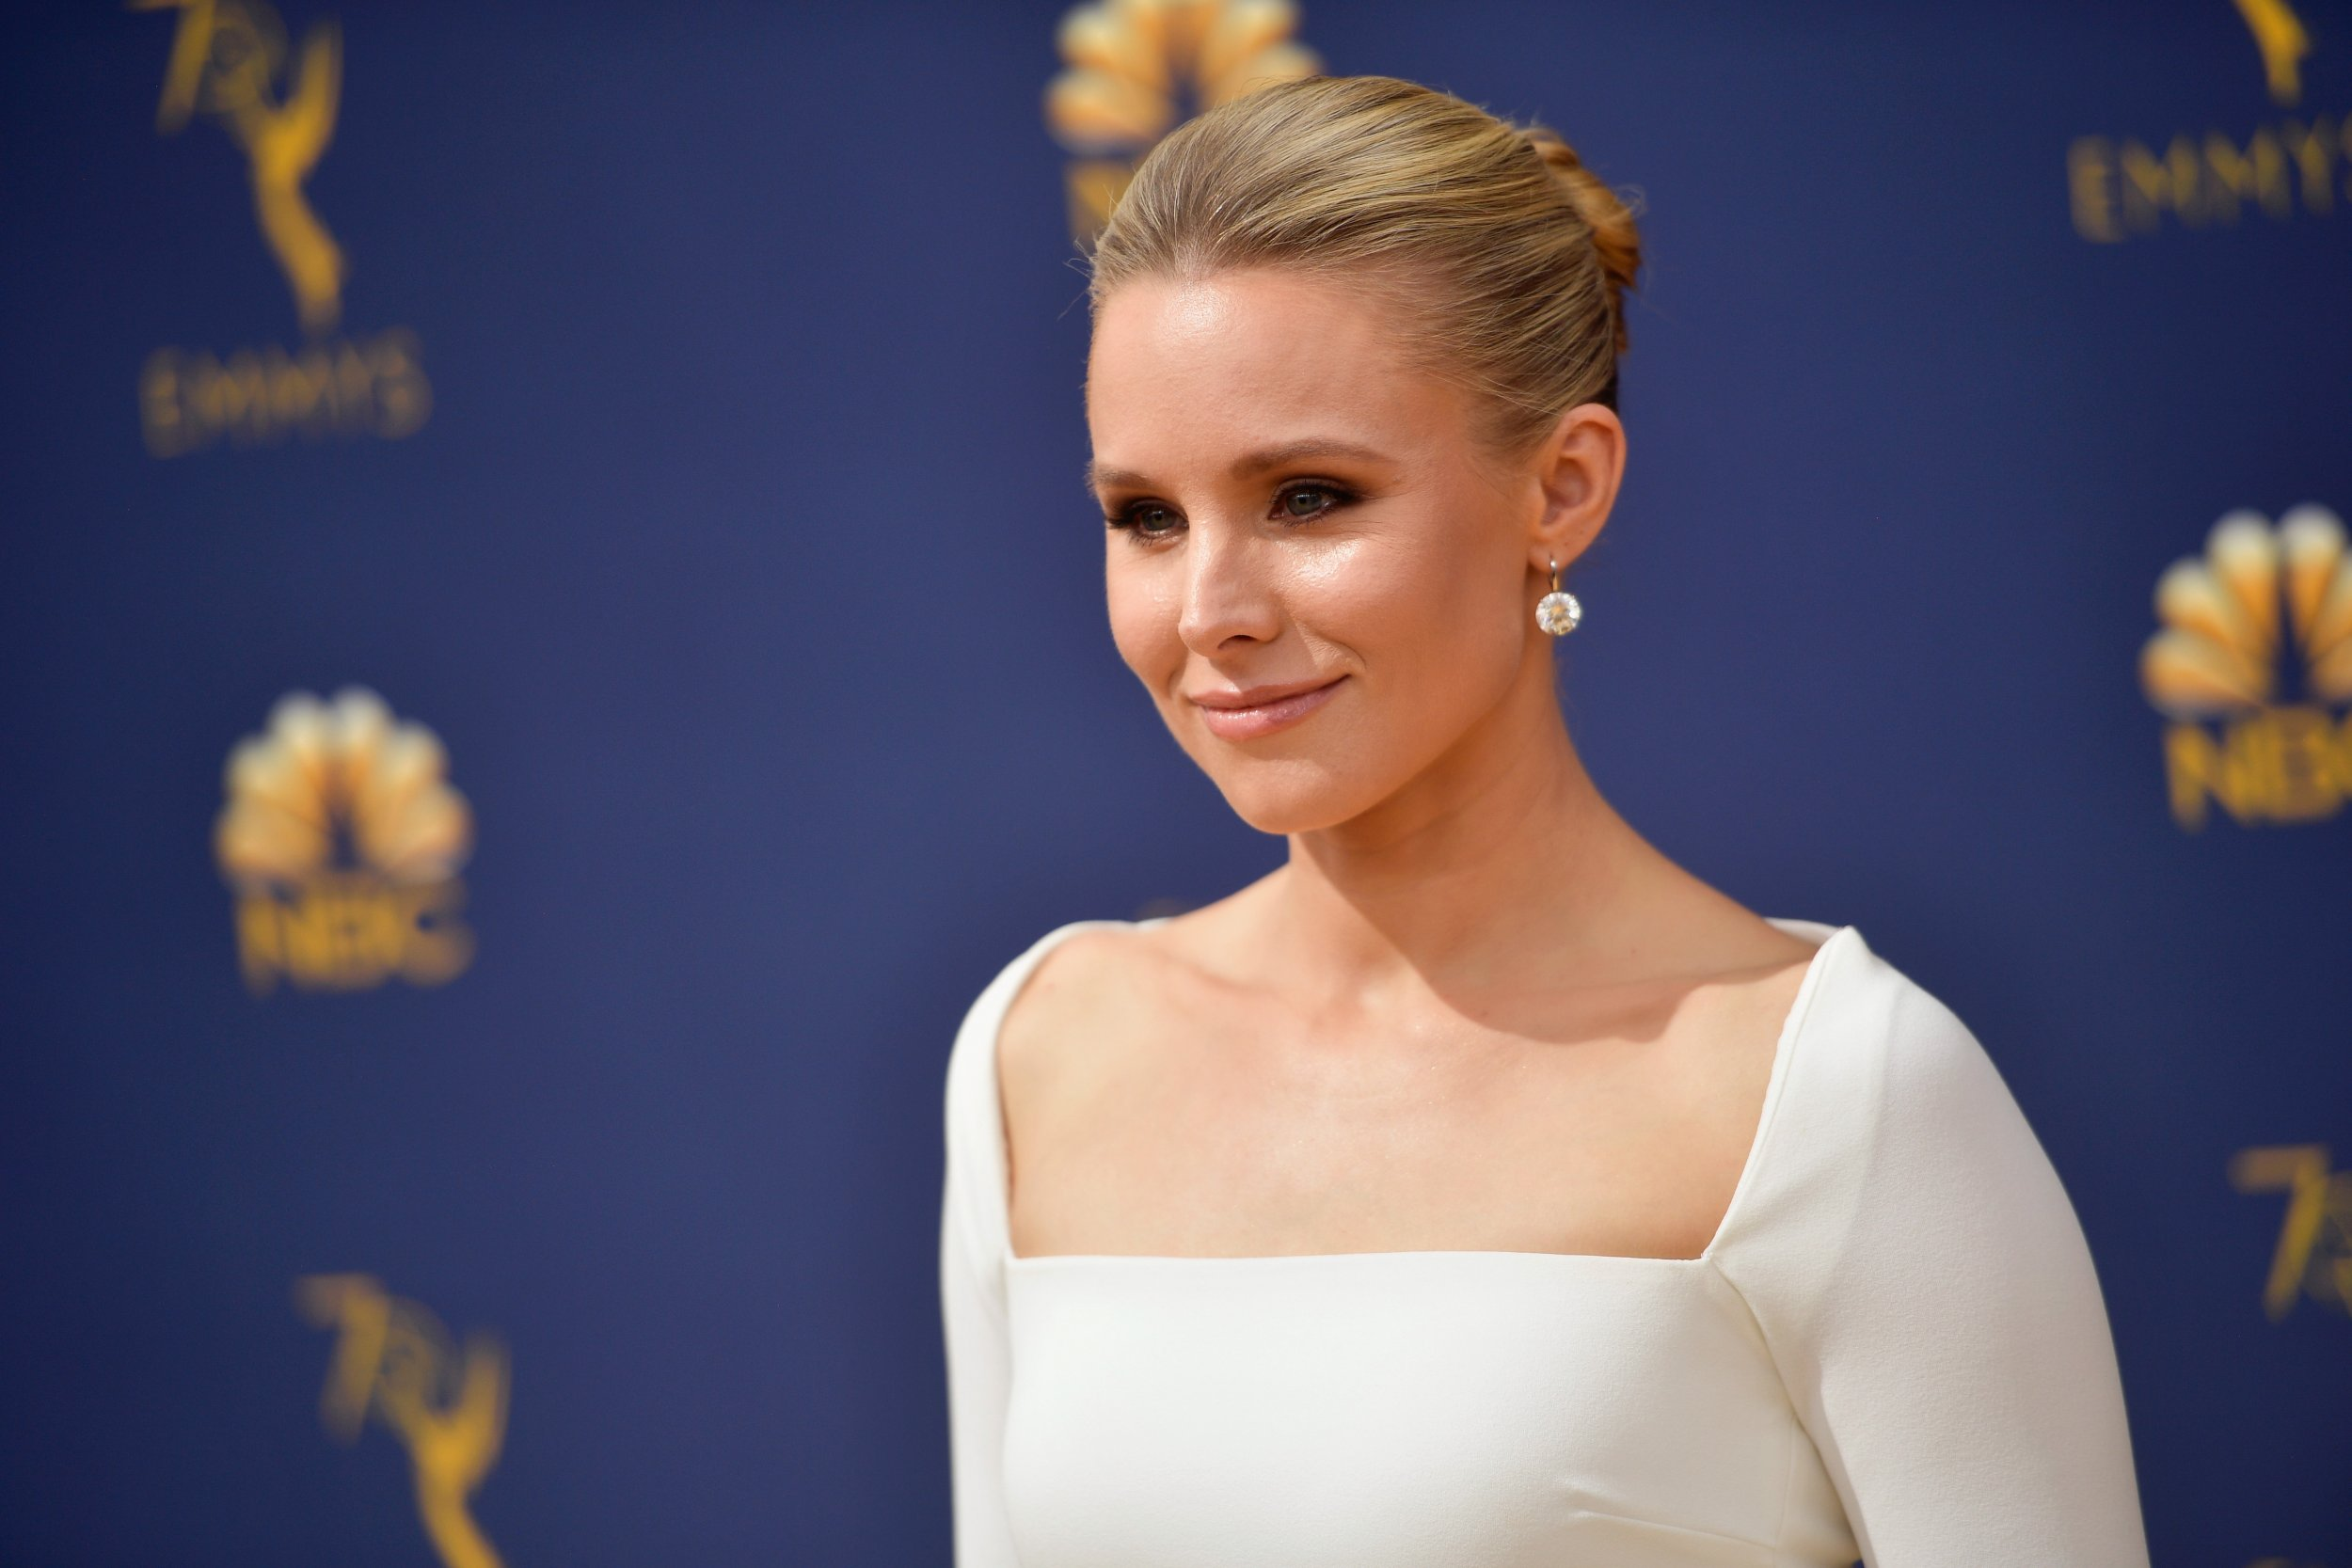 James Woods Questions Kristen Bell's Thoughts on 'Snow White'